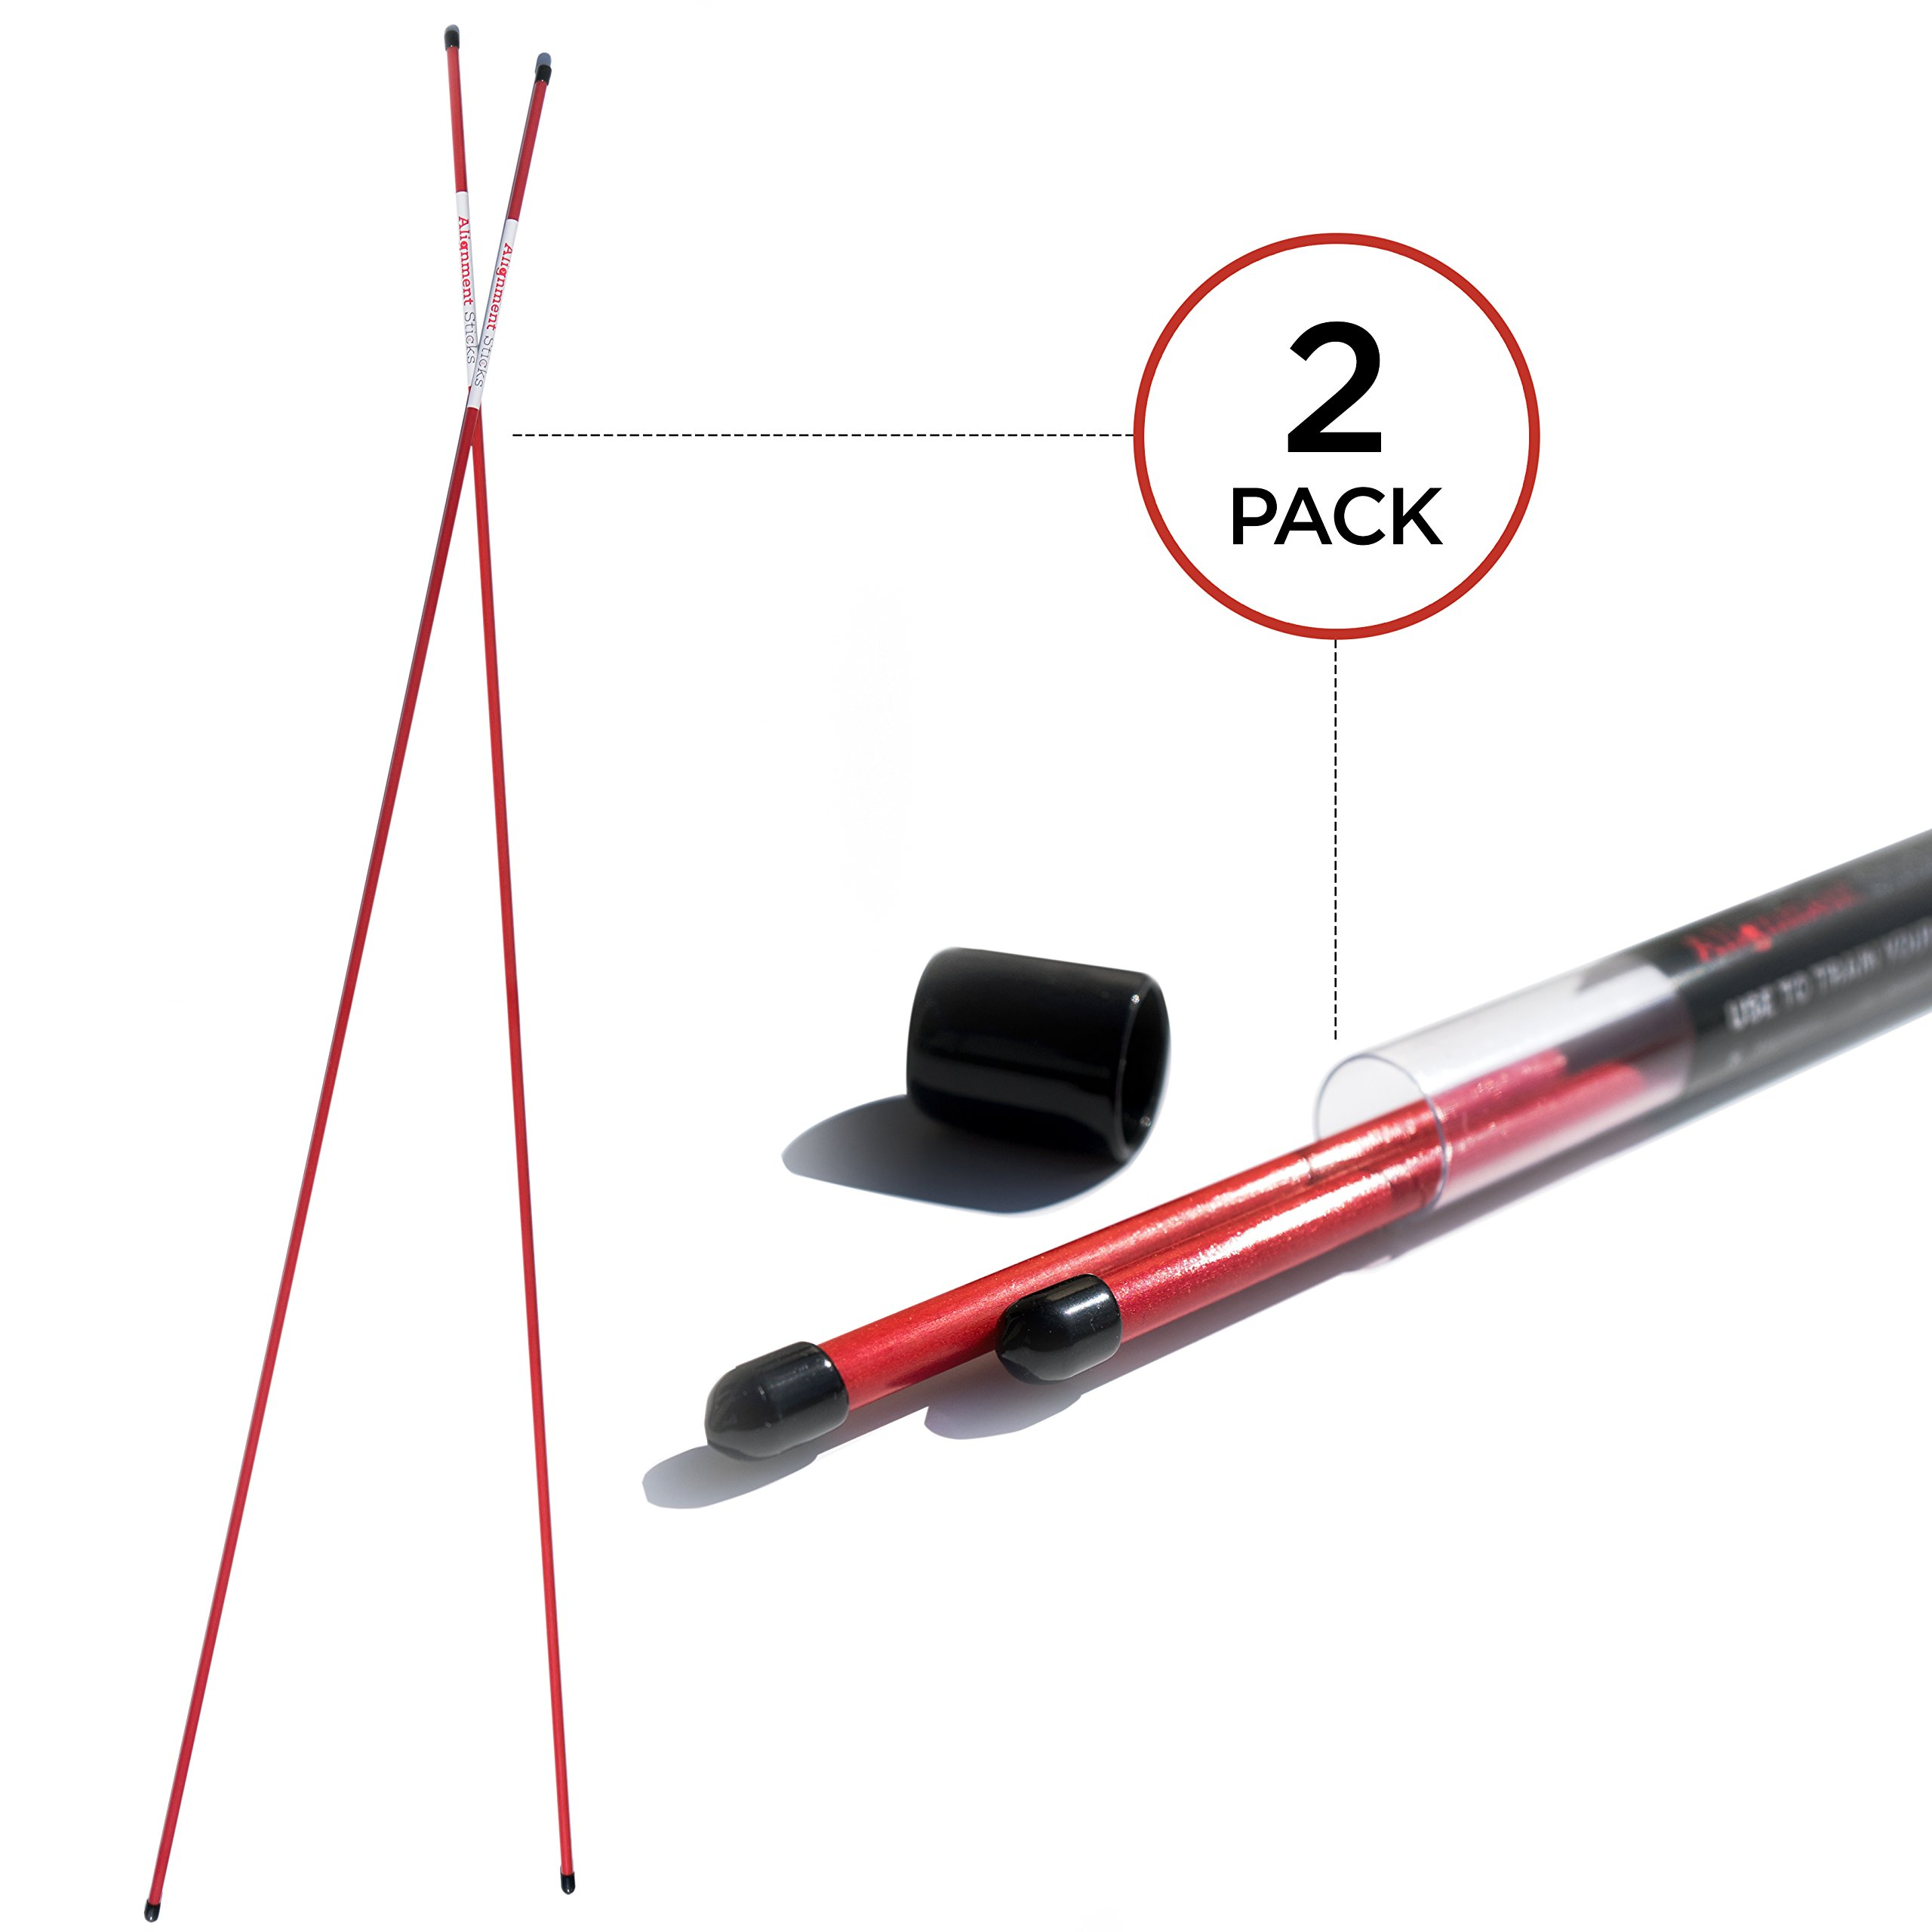 SHAUN WEBB Golf Alignment Sticks. Practice Rods, Training Accessories and Equipment, Aiming, Putting, Full Swing Trainer, Shoulder, Hip and Posture Corrector with Clear Tube Case. Best Golfer Gift by SHAUN WEBB